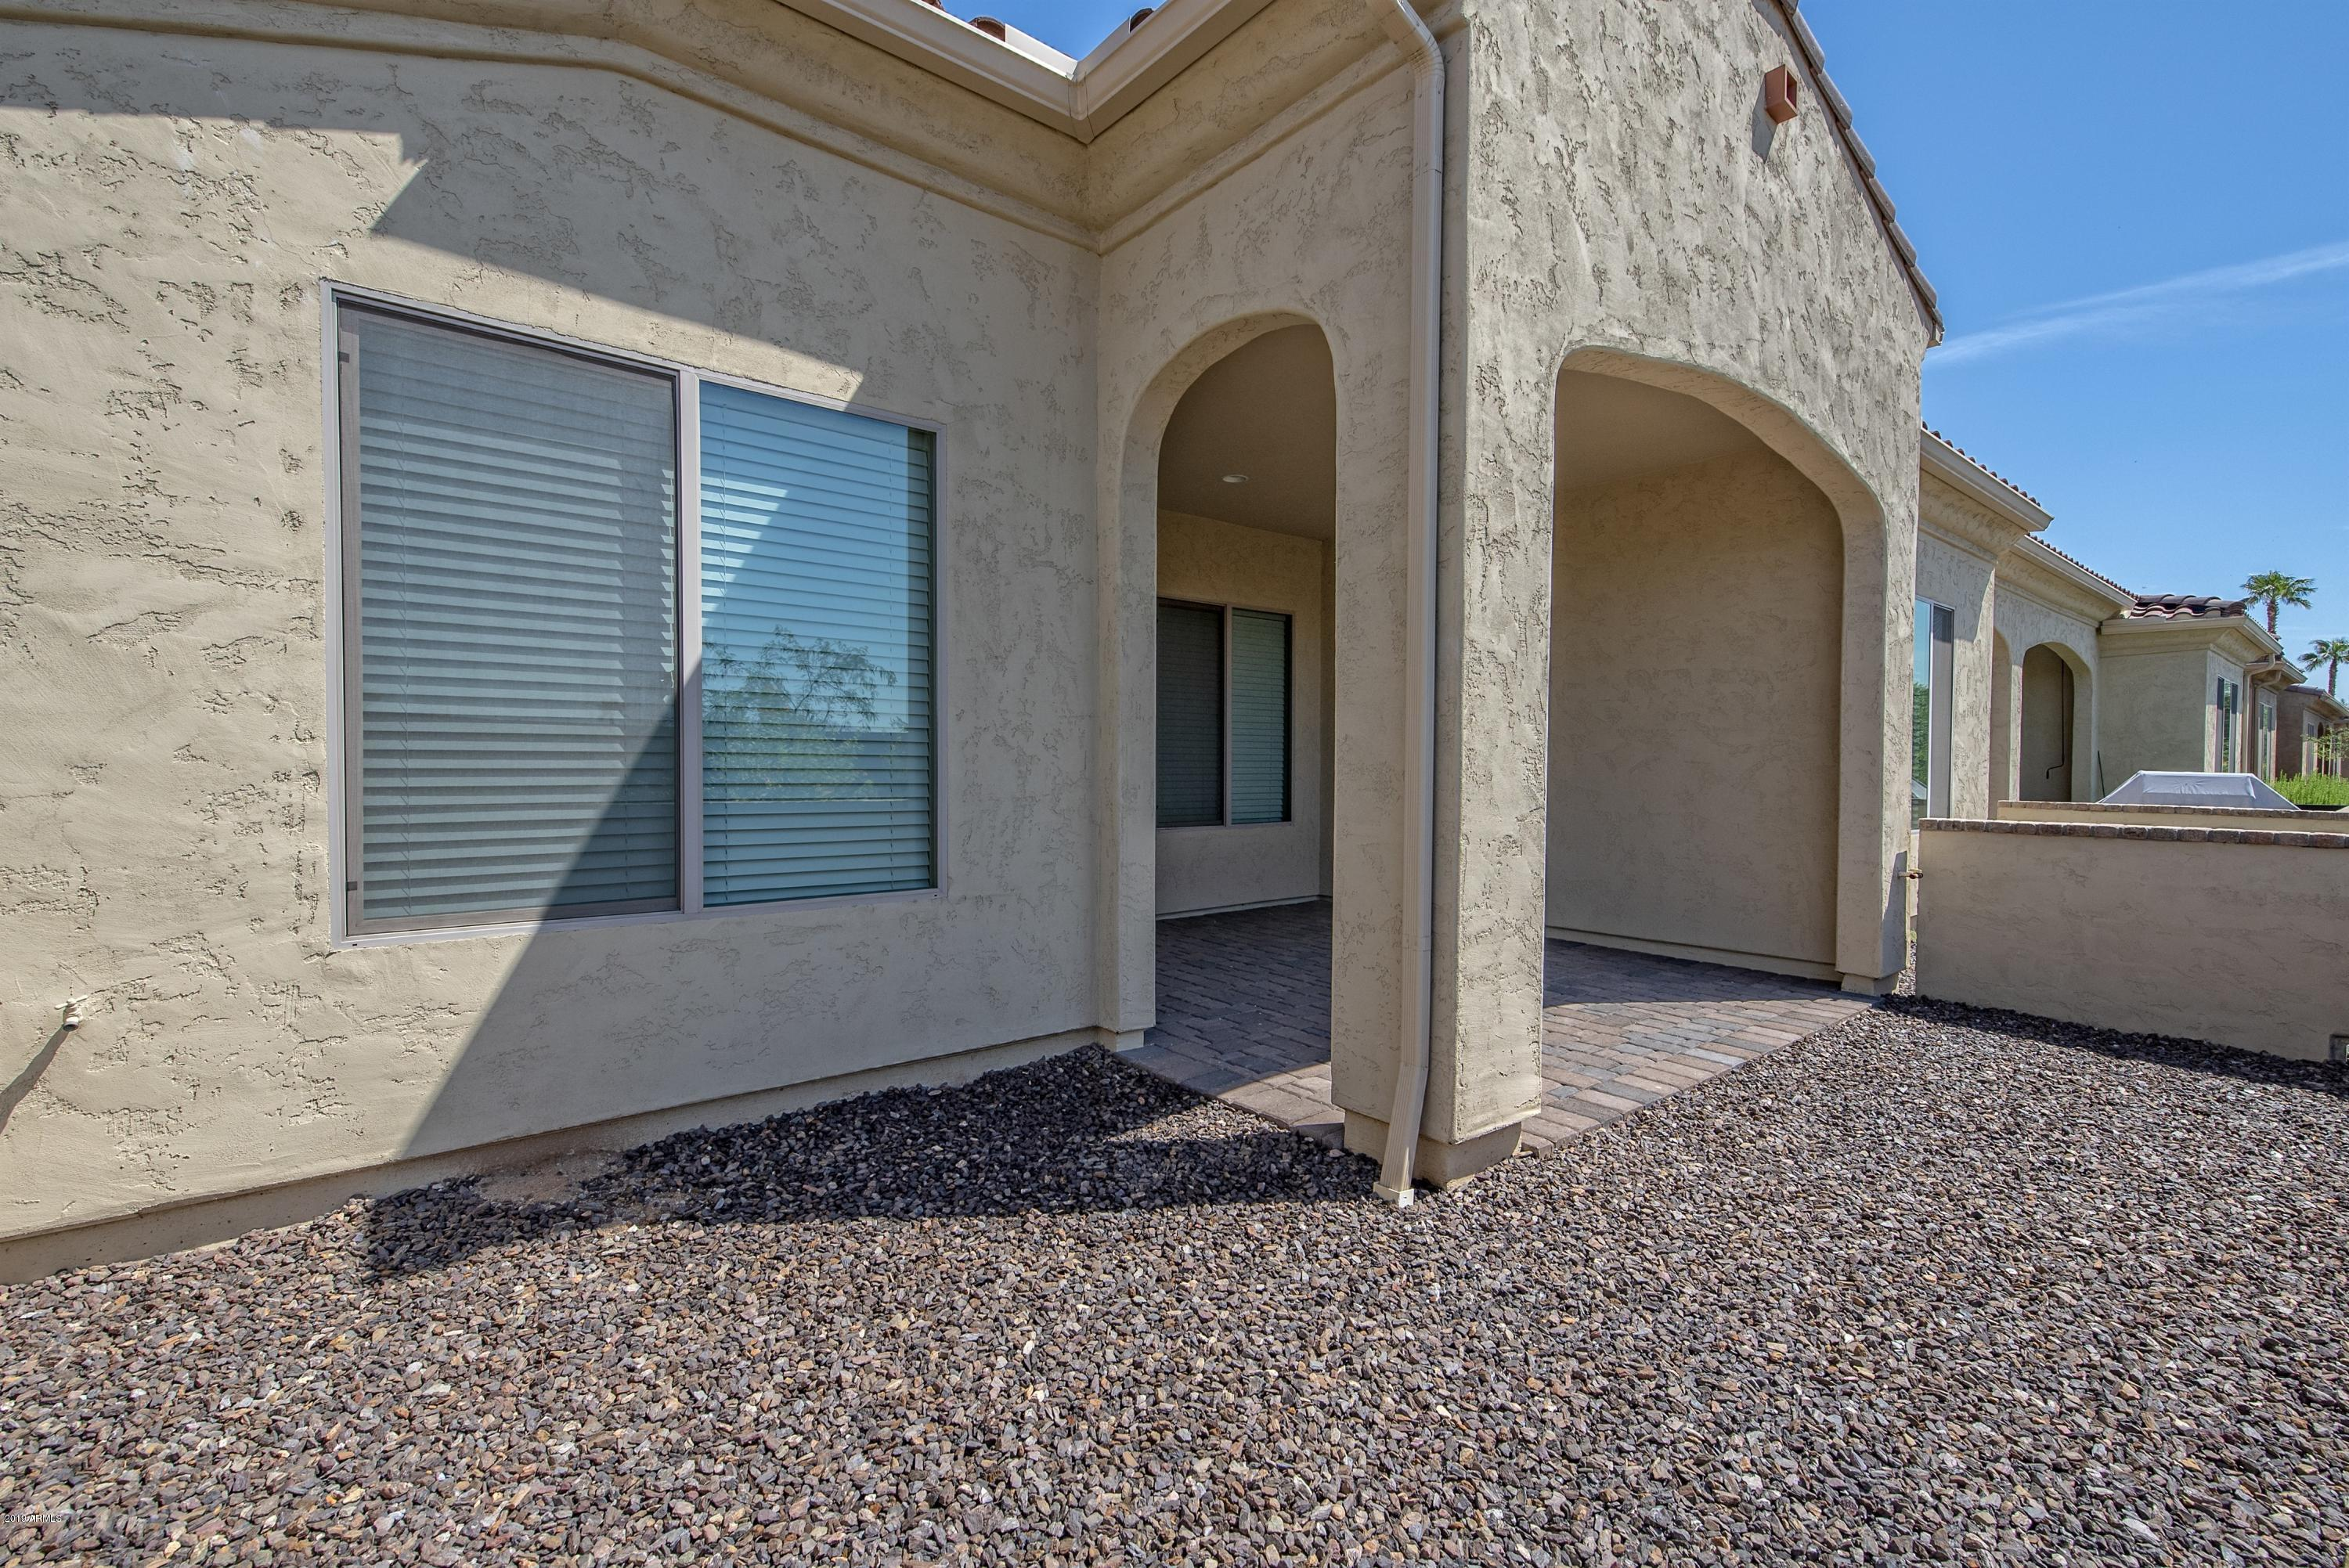 MLS 5963839 16943 W BERKELEY Court, Goodyear, AZ 85395 Goodyear AZ Condo or Townhome